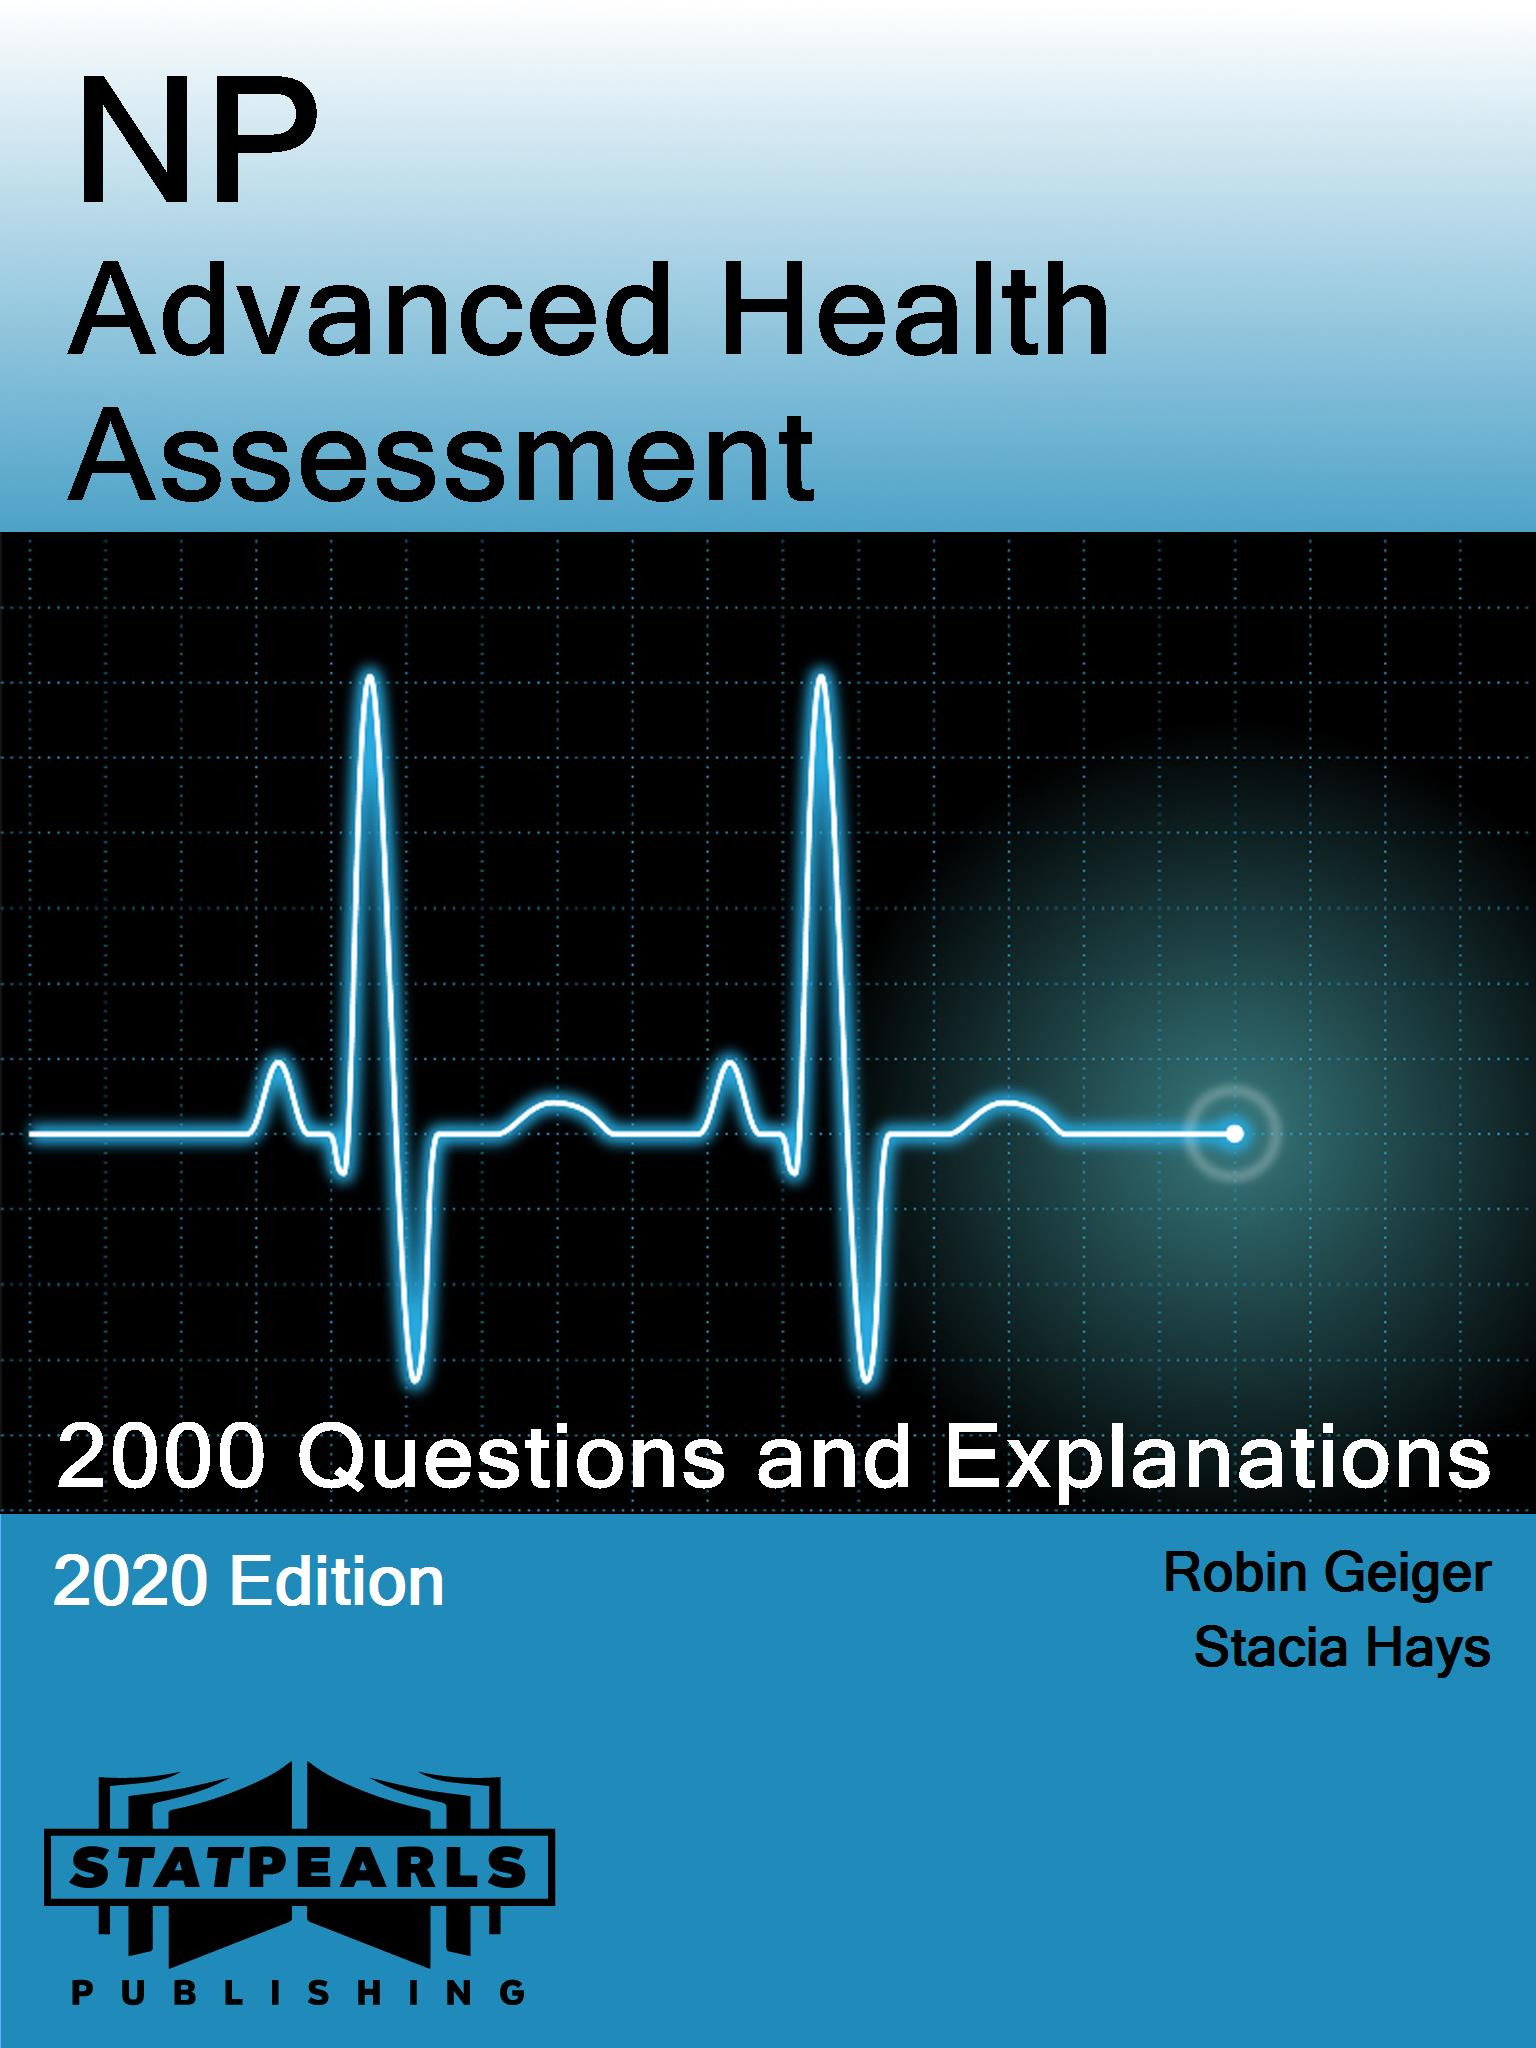 NP Advanced Health Assessment